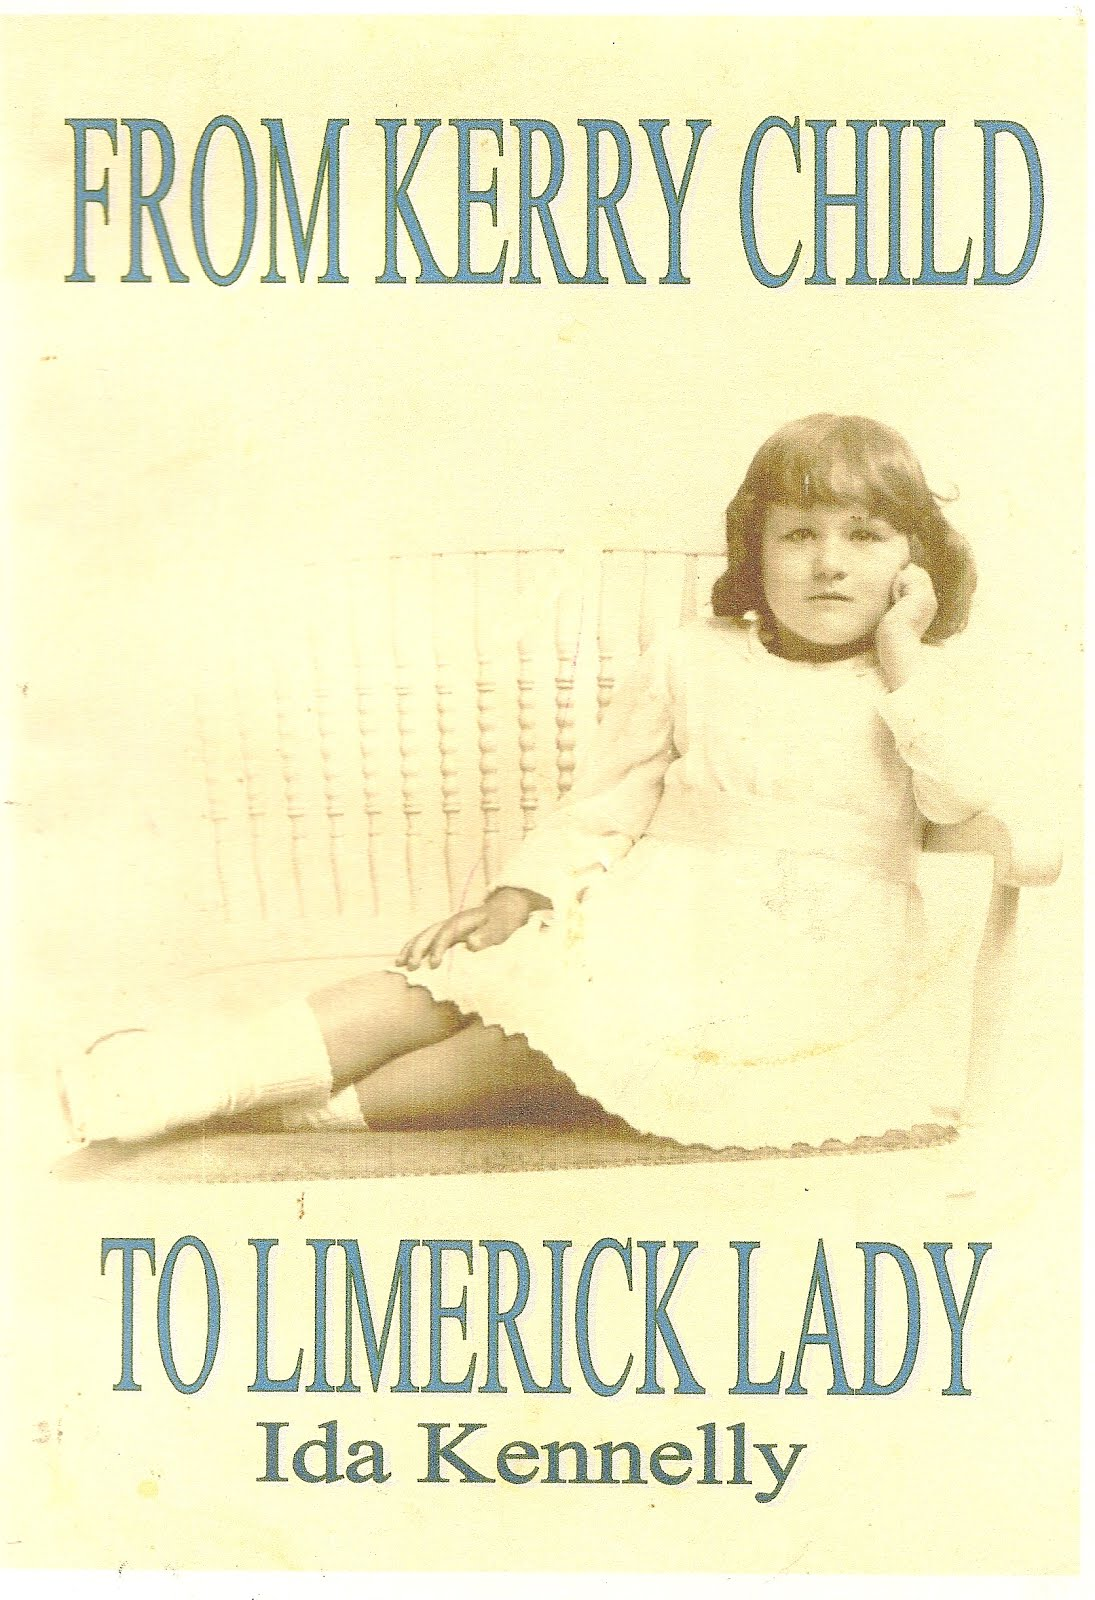 From Kerry Child to Limerick Lady, edited by MIW's Marion Riley.